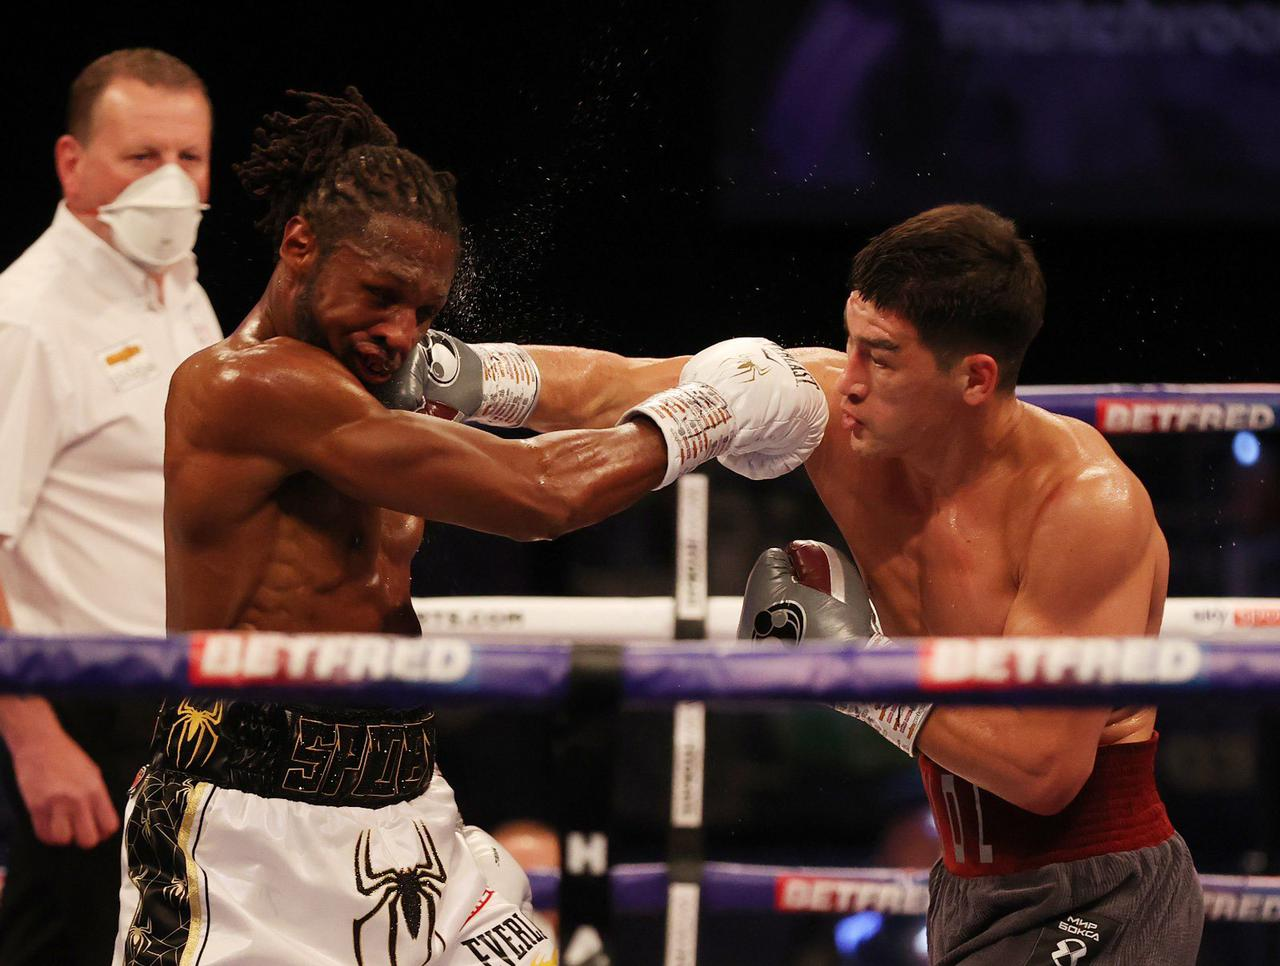 Dmitry Bivol retained his WBA belt against Richards in Manchester